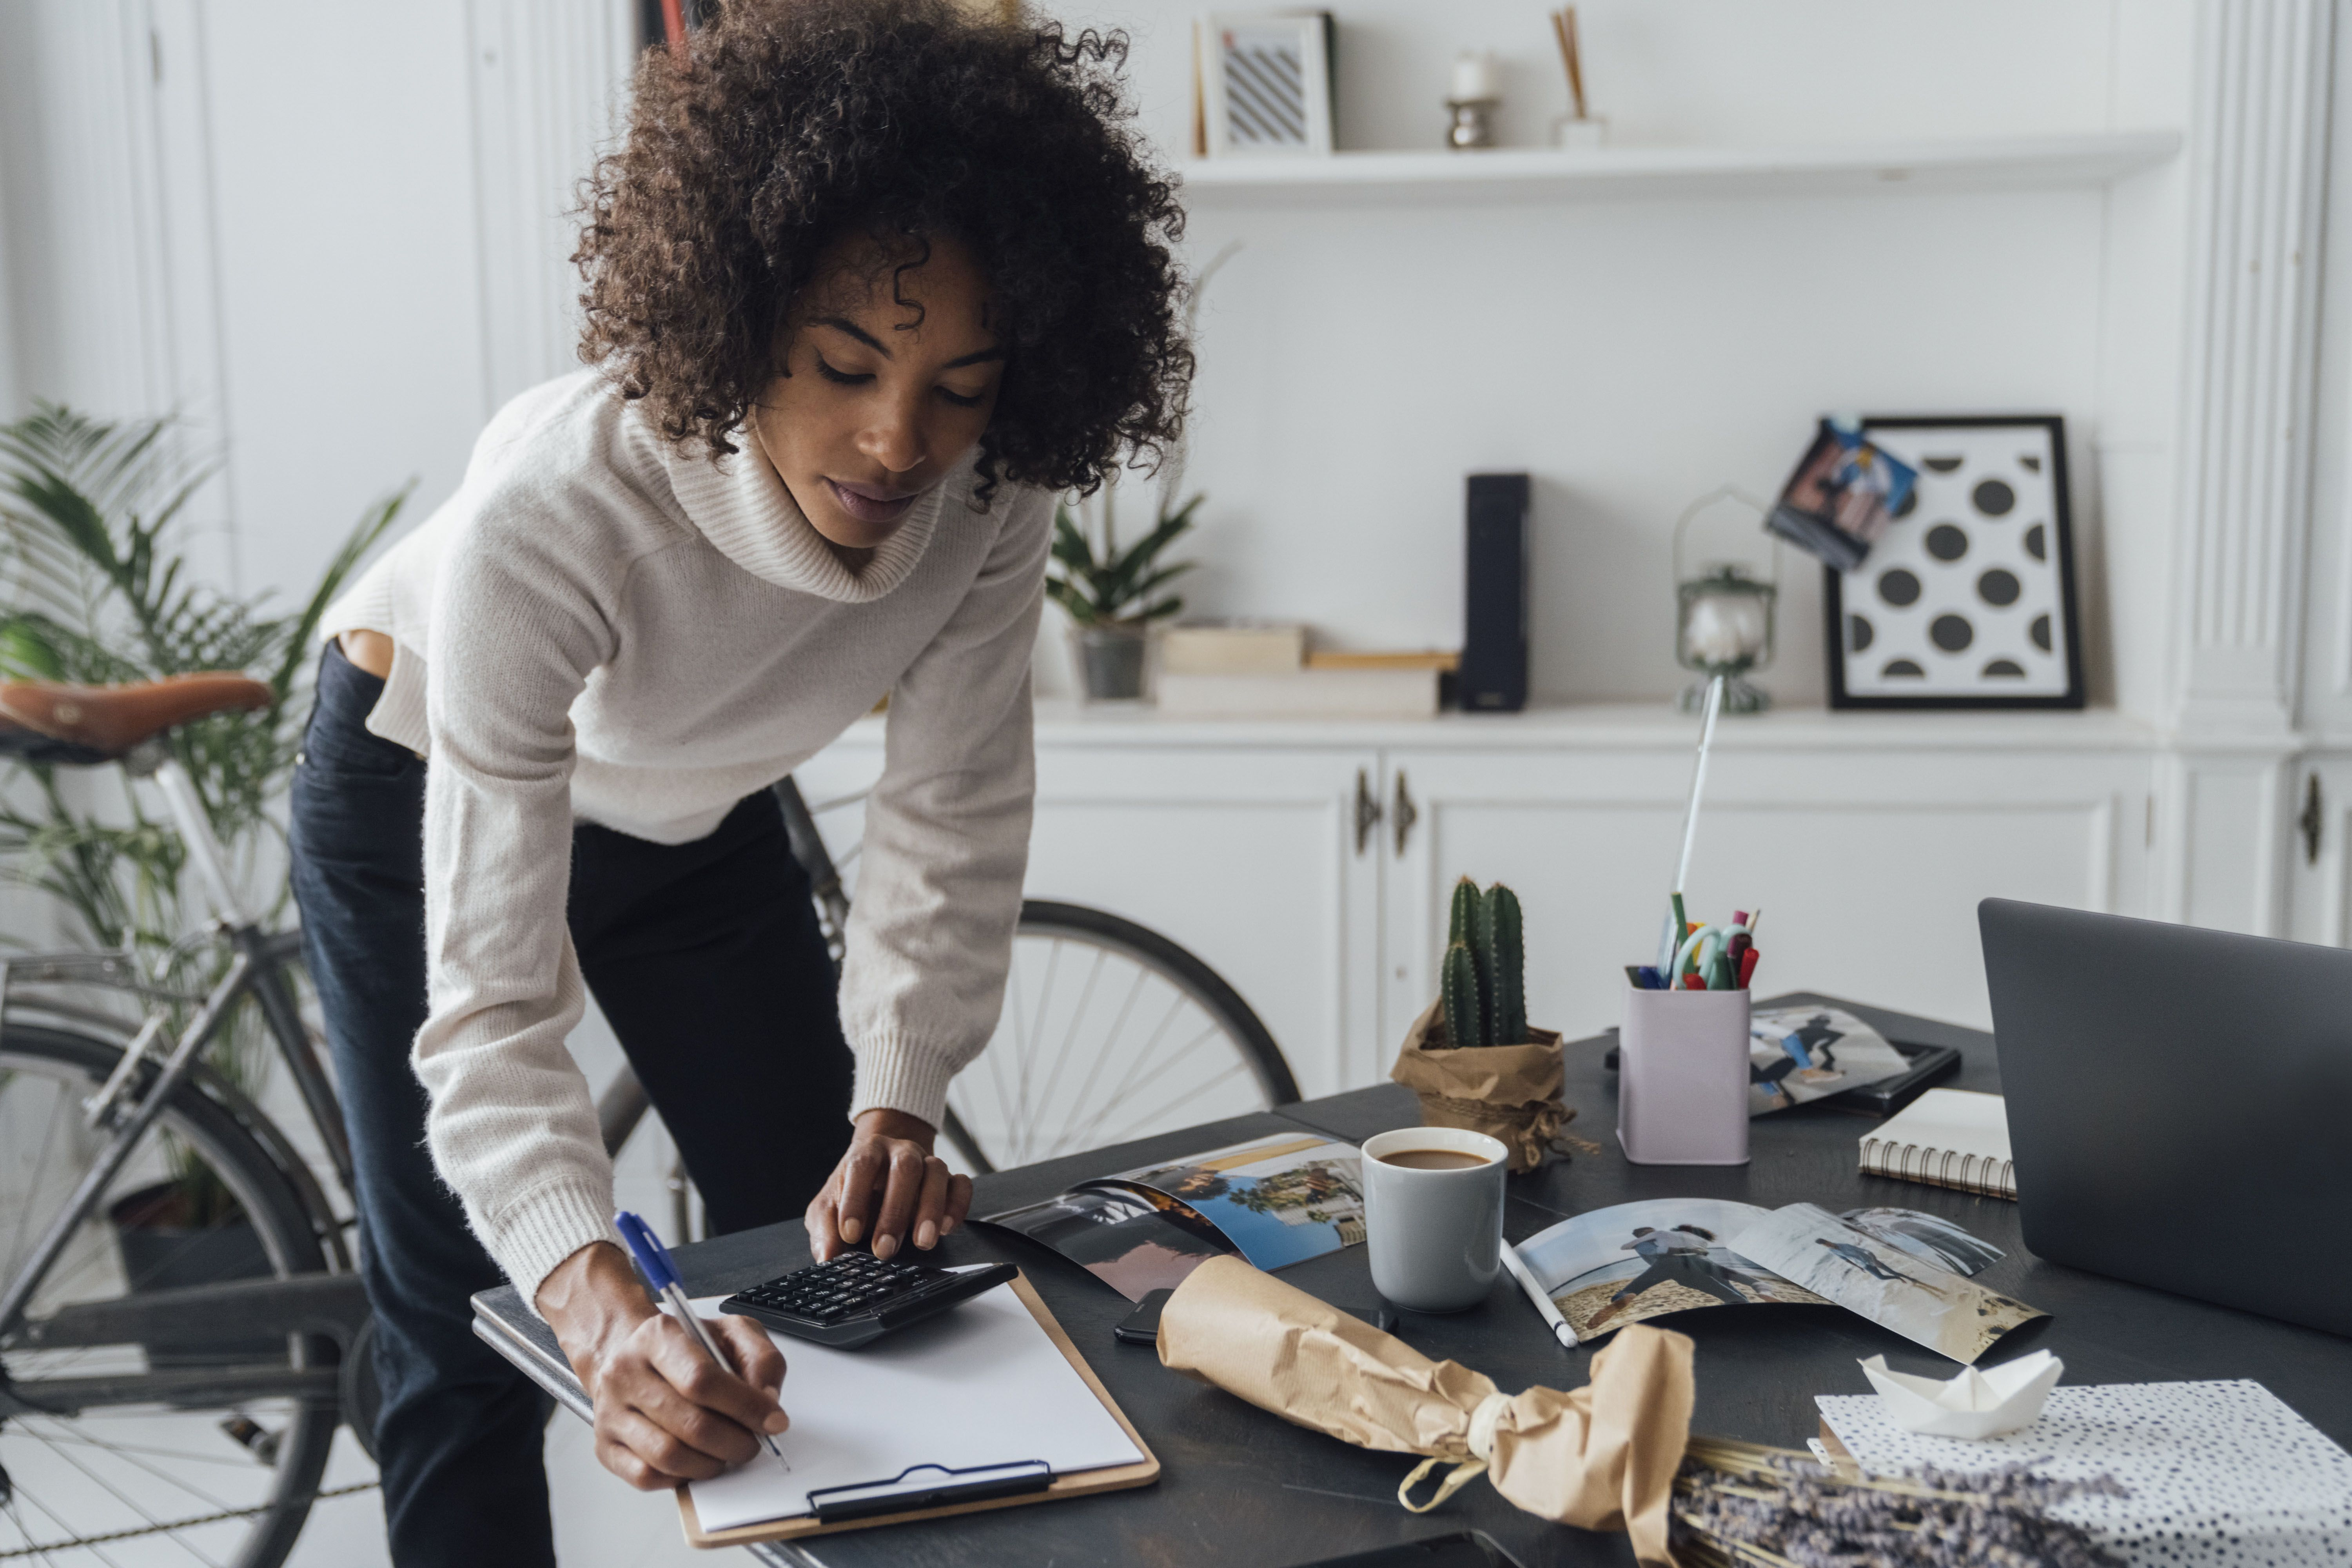 A Roth IRA vs. a 401k: Exactly What to Consider